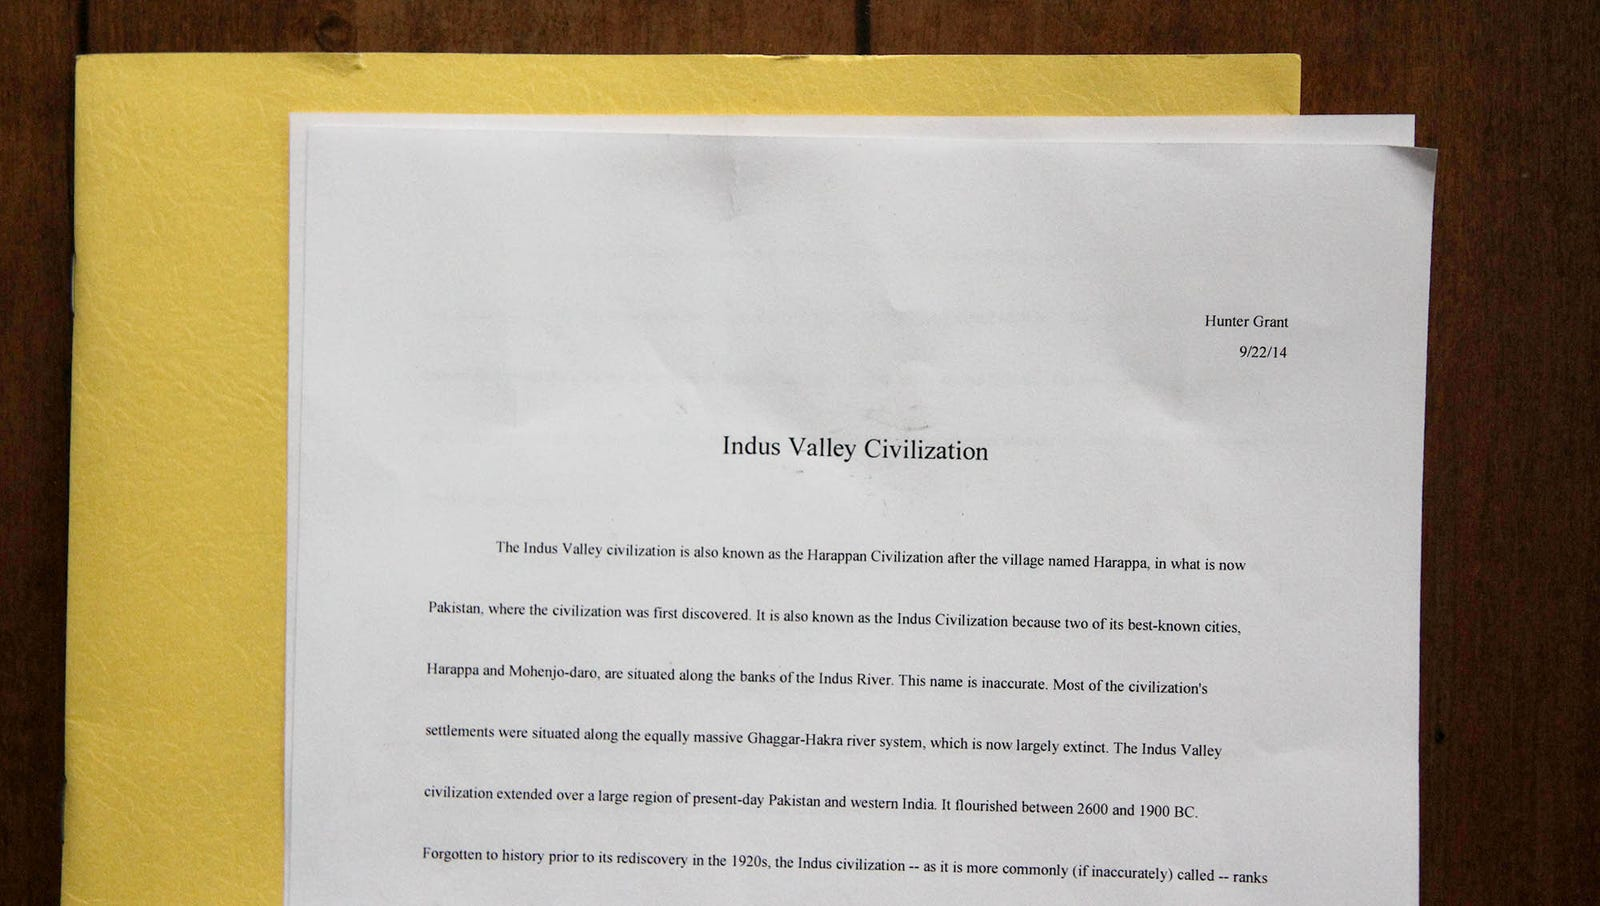 Report On Indus Valley Civilization: So dumb.